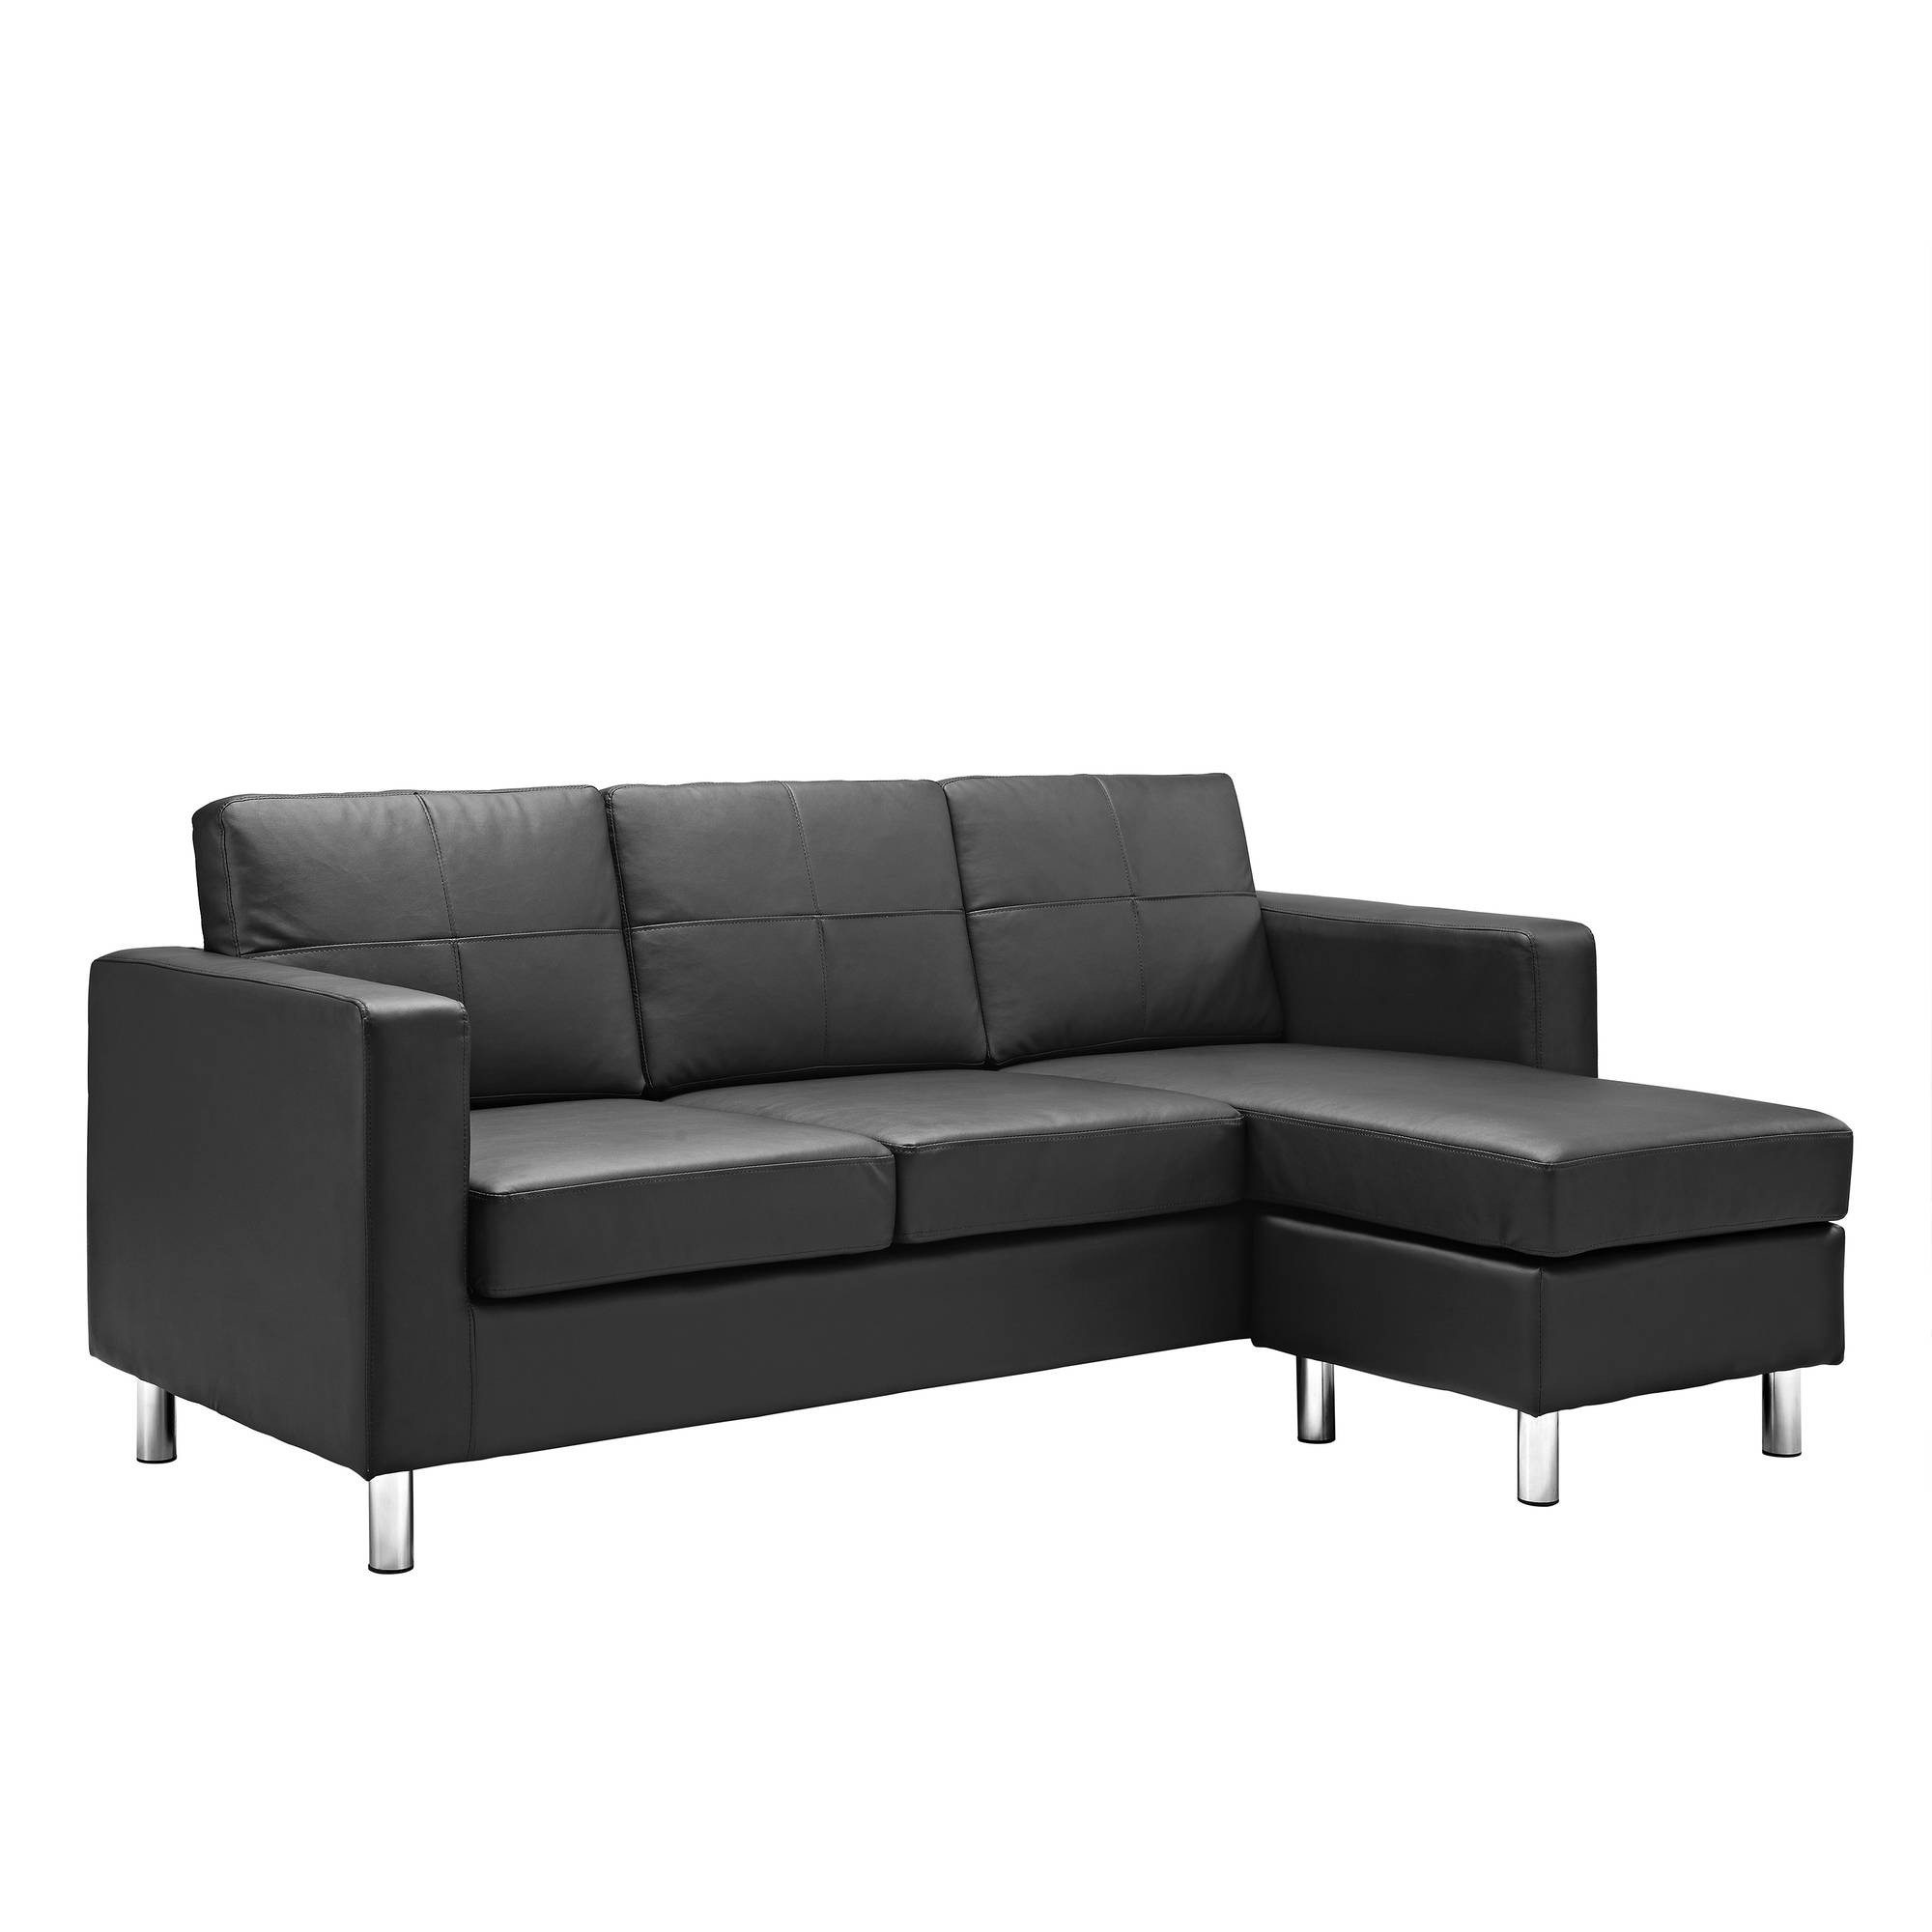 Fresh Gray Sectional Sofa Walmart – Mediasupload For Sectional Sofas At Walmart (View 3 of 15)